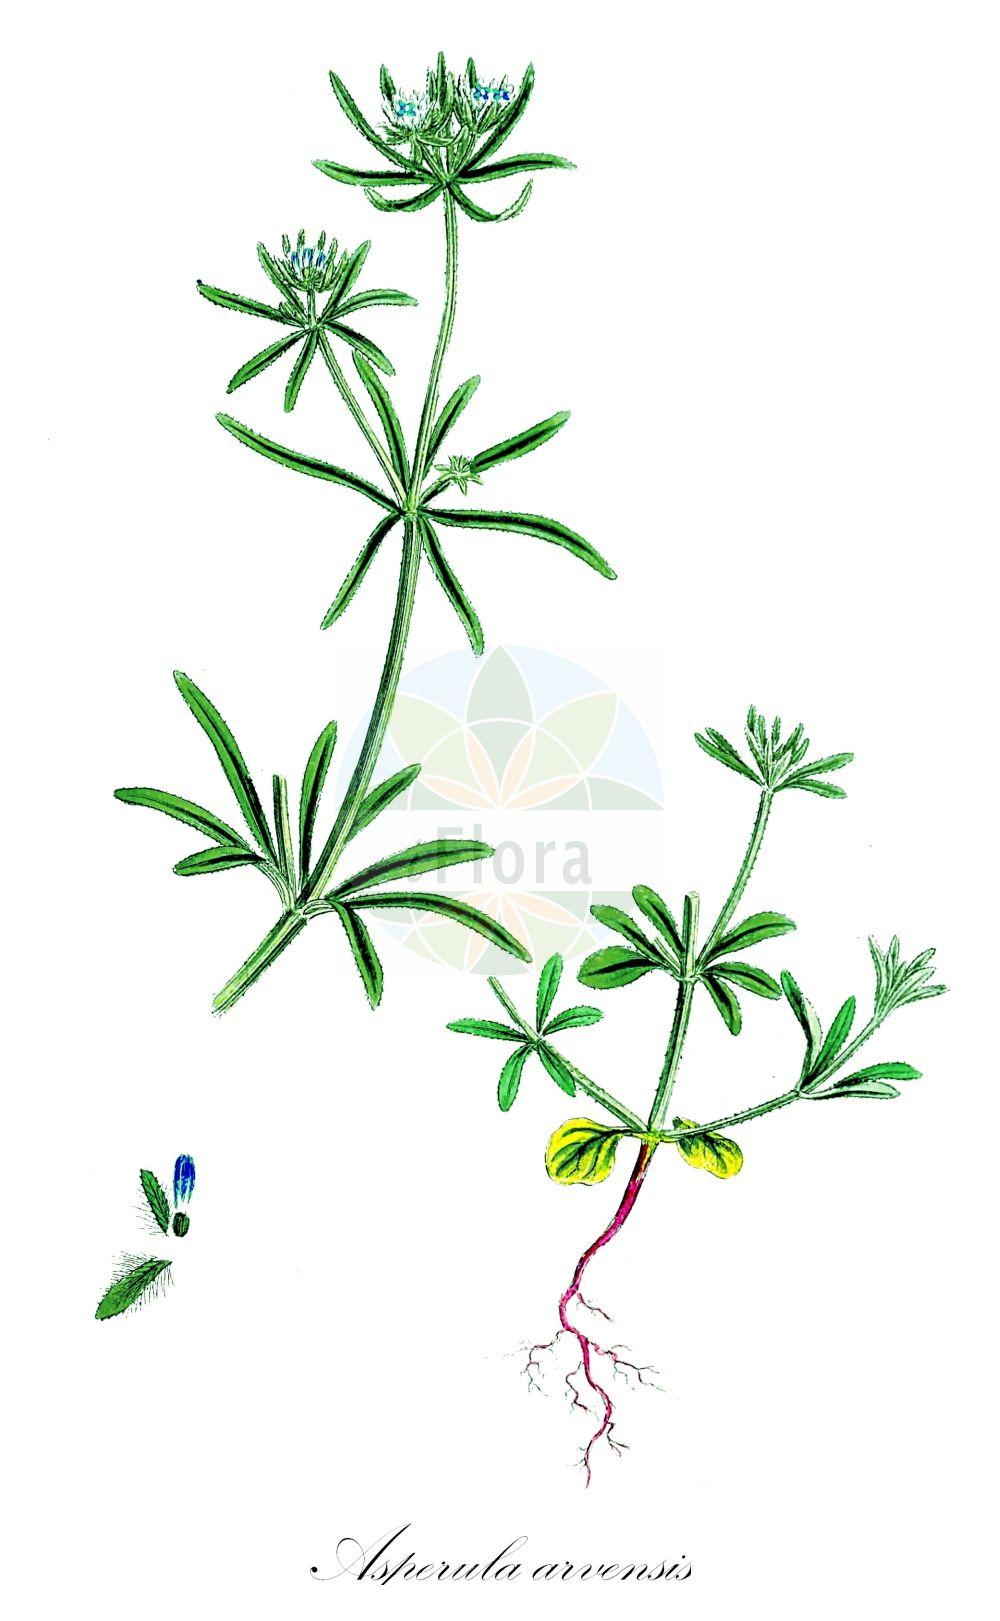 Historische Abbildung von Asperula arvensis (Acker-Meier - Blue Woodruff). Das Bild zeigt Blatt, Bluete, Frucht und Same. ---- Historical Drawing of Asperula arvensis (Acker-Meier - Blue Woodruff).The image is showing leaf, flower, fruit and seed.(Asperula arvensis,Acker-Meier,Blue Woodruff,Acker-Meister,Field Woodruff,Quincywort,Asperula,Meier,Woodruff,Rubiaceae,Roetegewaechse;Kaffeegewaechse;Krappgewaechse;Labkrautgewaechse,Bedstraw family,Blatt,Bluete,Frucht,Same,leaf,flower,fruit,seed,Sowerby (1790-1813))